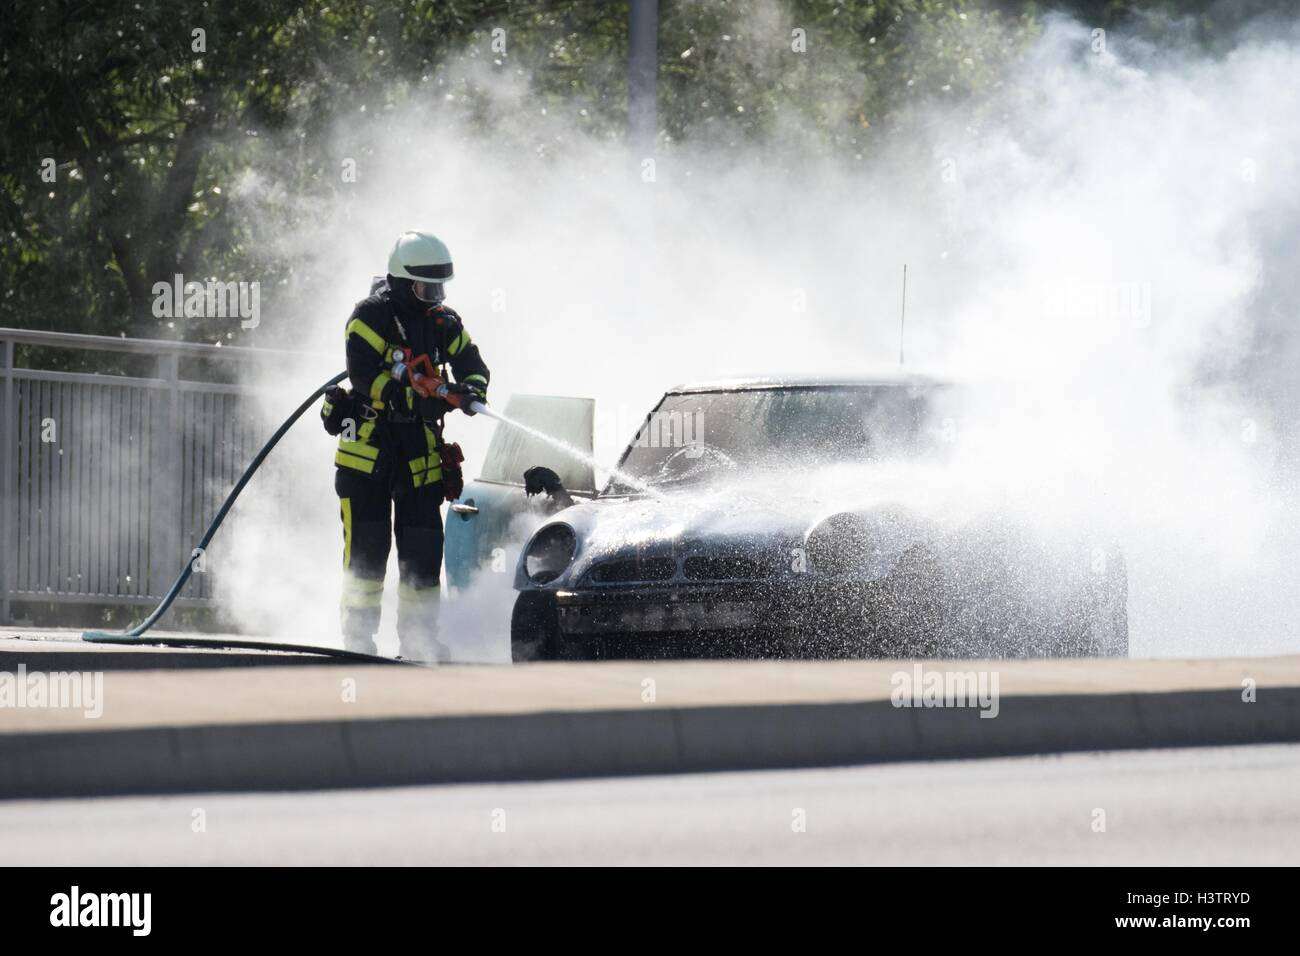 Firefighter extinguishes burning car, Germany - Stock Image